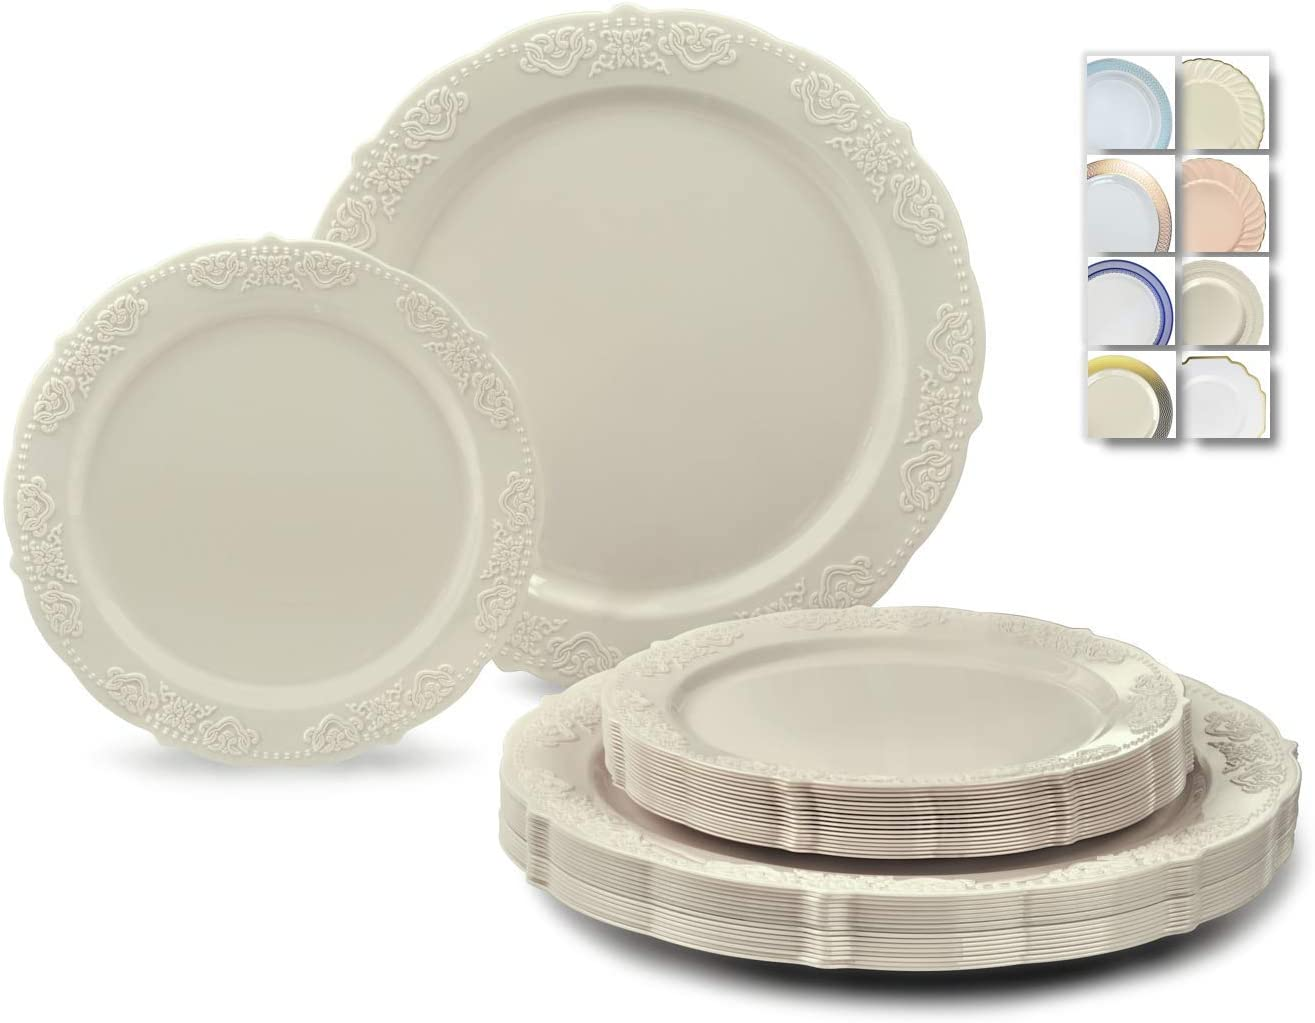 OCCASIONS 240 Plates Pack,(120 Guests) Vintage Wedding Party Disposable Plastic Plates Set -120 x 10.25'' Dinner + 120 x 7.5'' Salad/Dessert Plate (Portofino Ivory) 61euMDjaacL